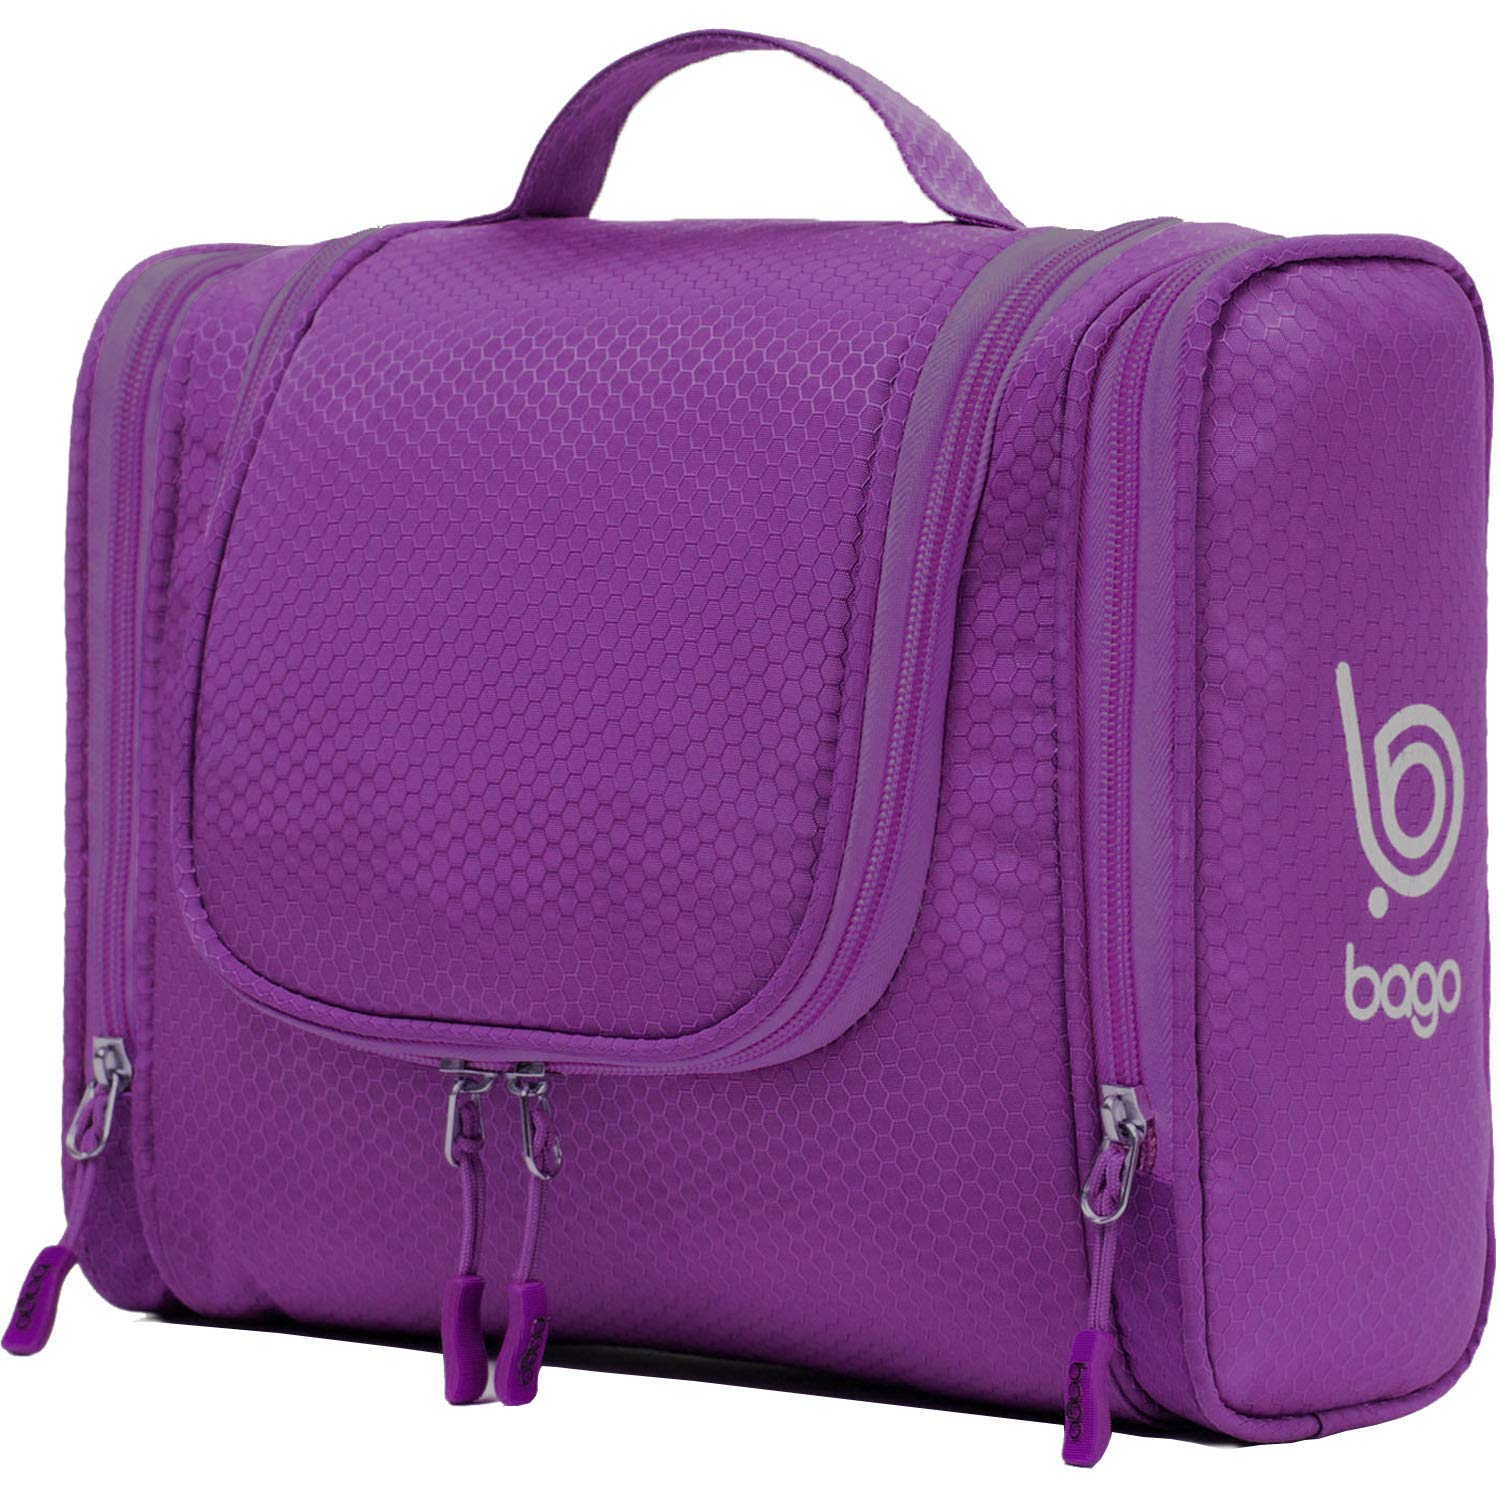 Bago Hanging Toiletry Bag For Women /& Men Pink Travel Bags for Toiletries//Leak Proof//Hanging Hook//Inner Organization to Keep Items From Moving Pack Like a PRO